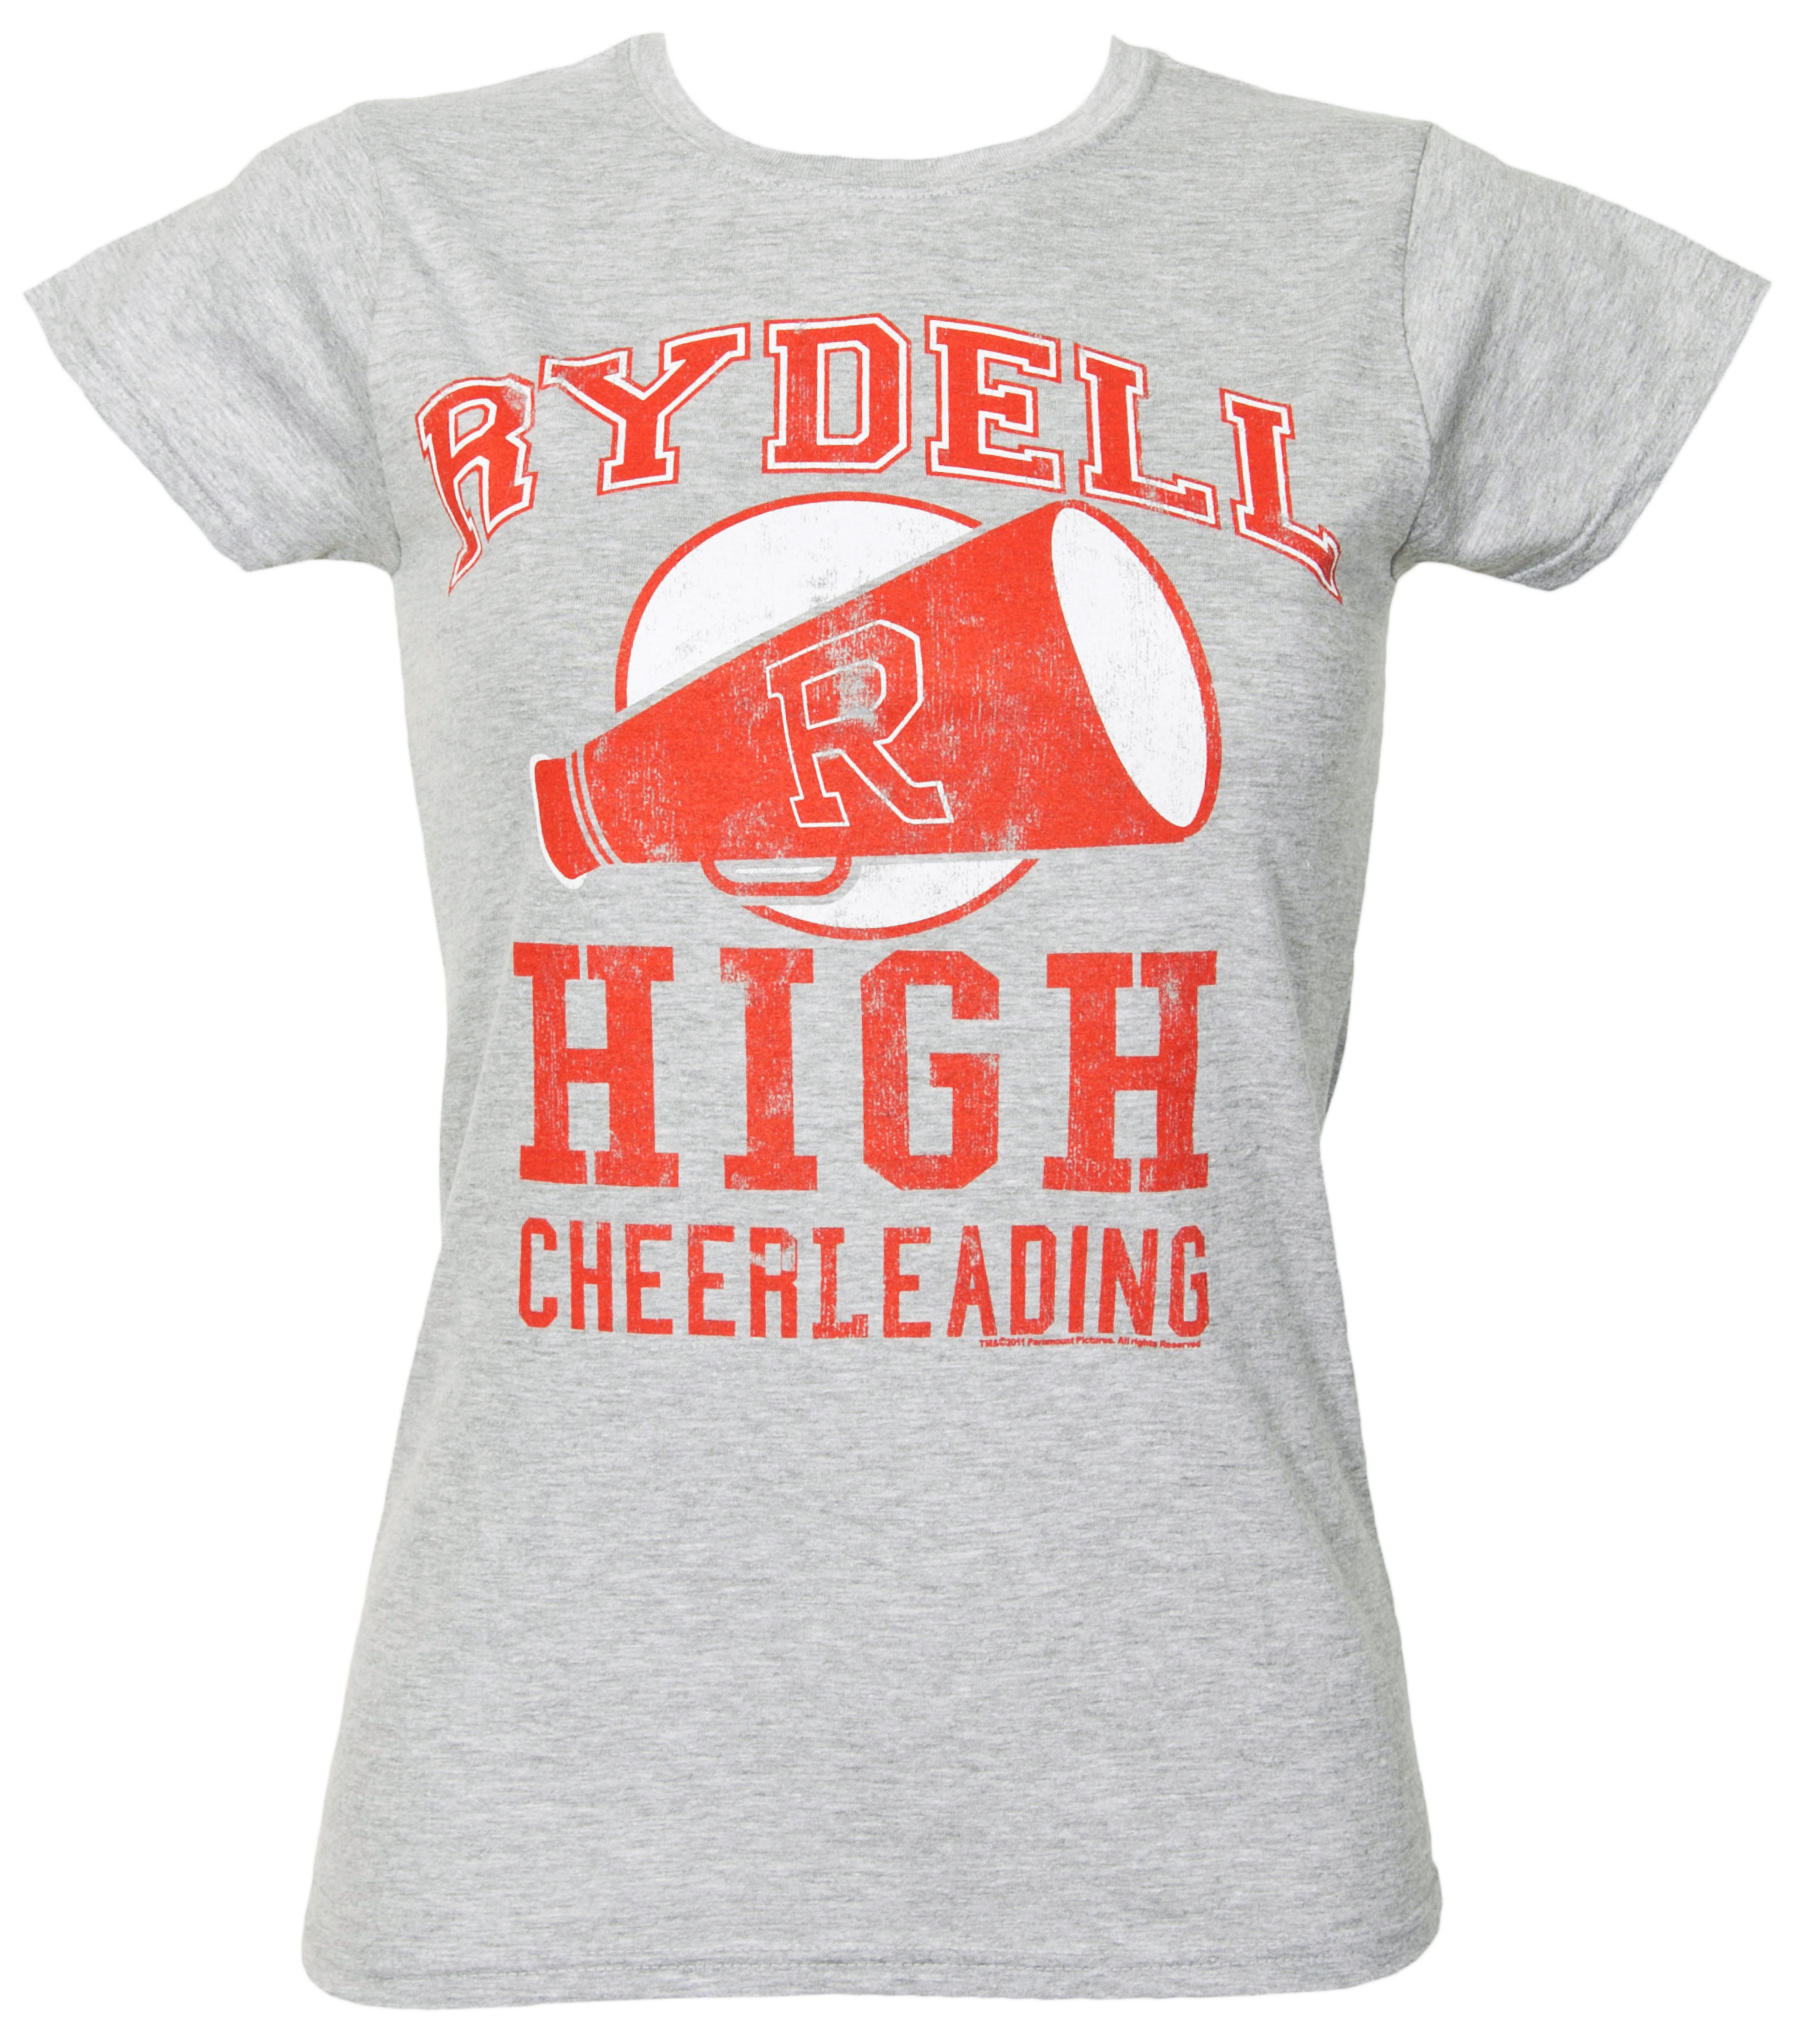 Ladies Grease Rydell High Cheerleading T-Shirt £19.99